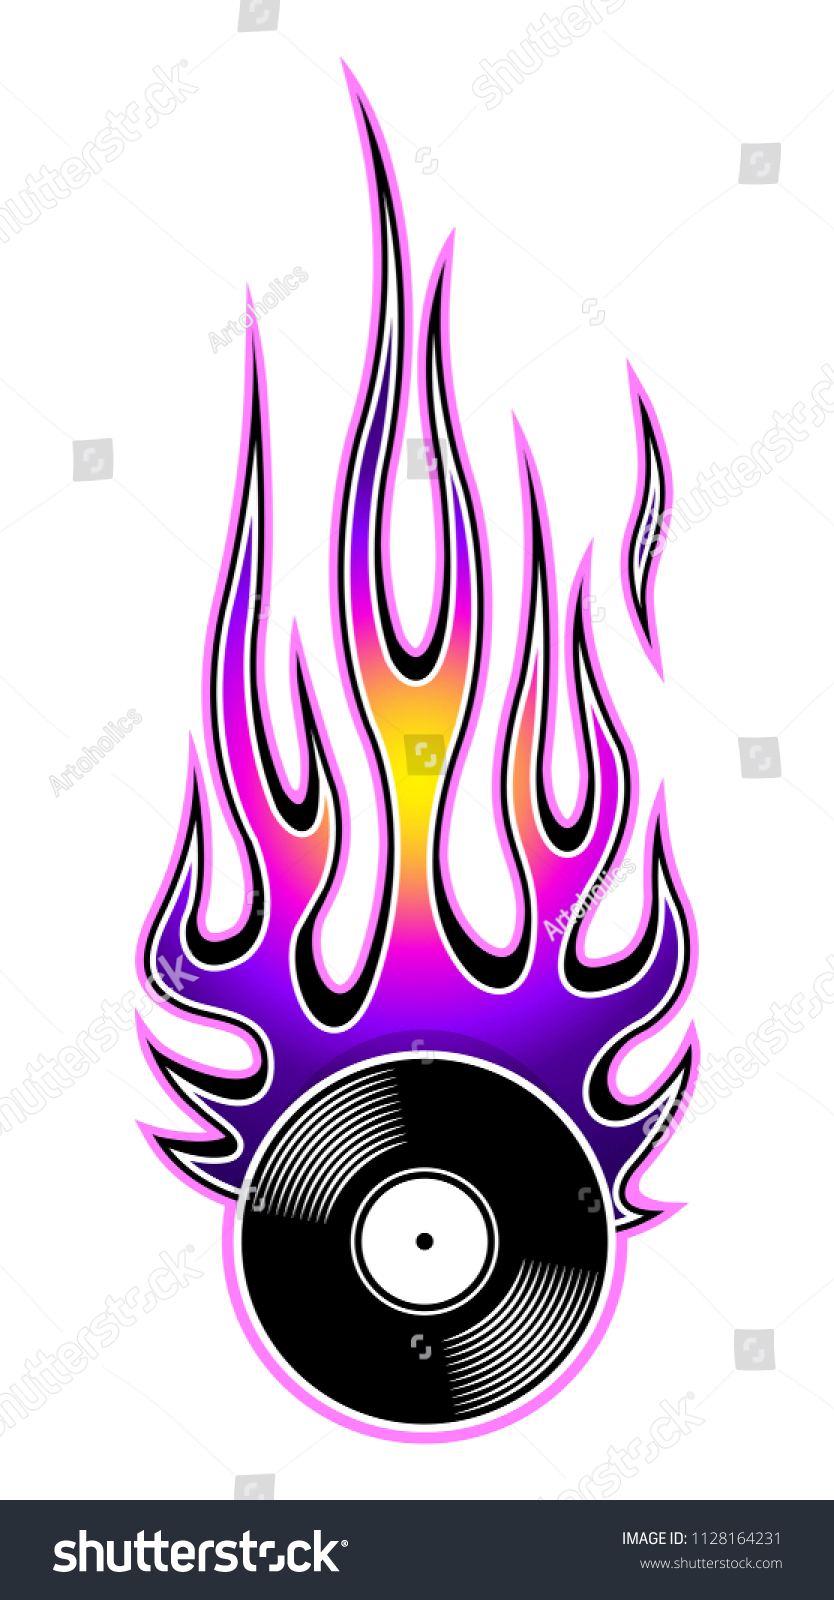 photo regarding Printable Flame referred to as Printable Vector Example Traditional Retro Vinyl Inventory